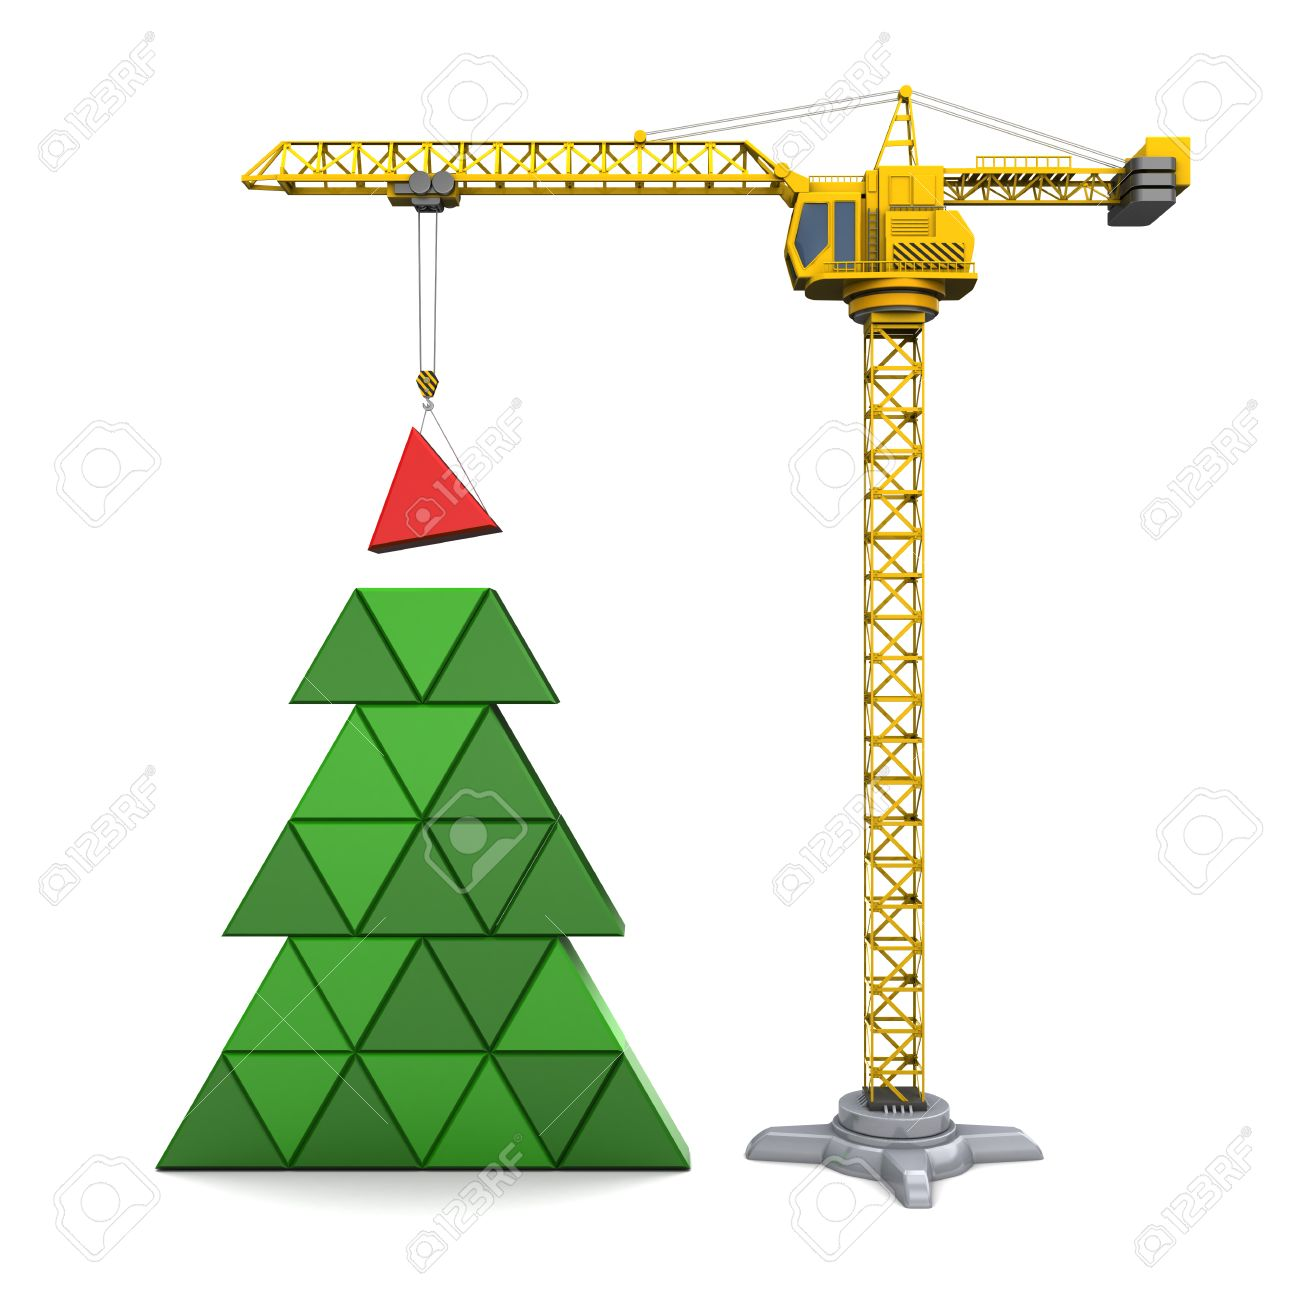 abstract 3d illustration of crane building christmas tree, over white background - 47008650